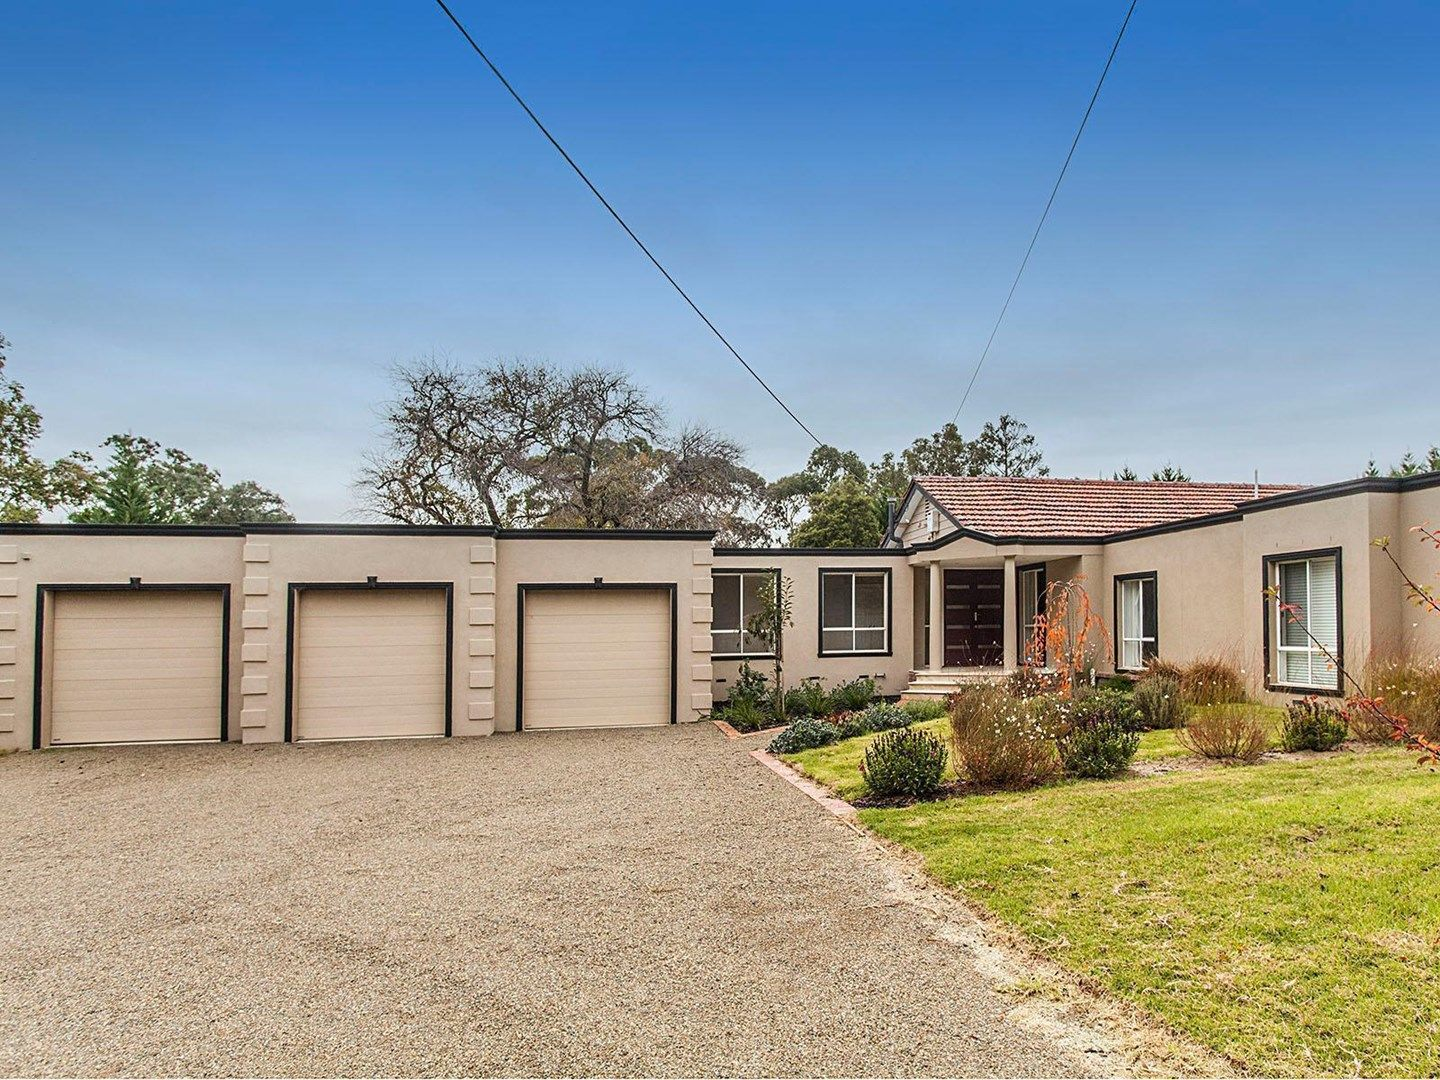 14-16 Alva Avenue, Park Orchards VIC 3114, Image 1